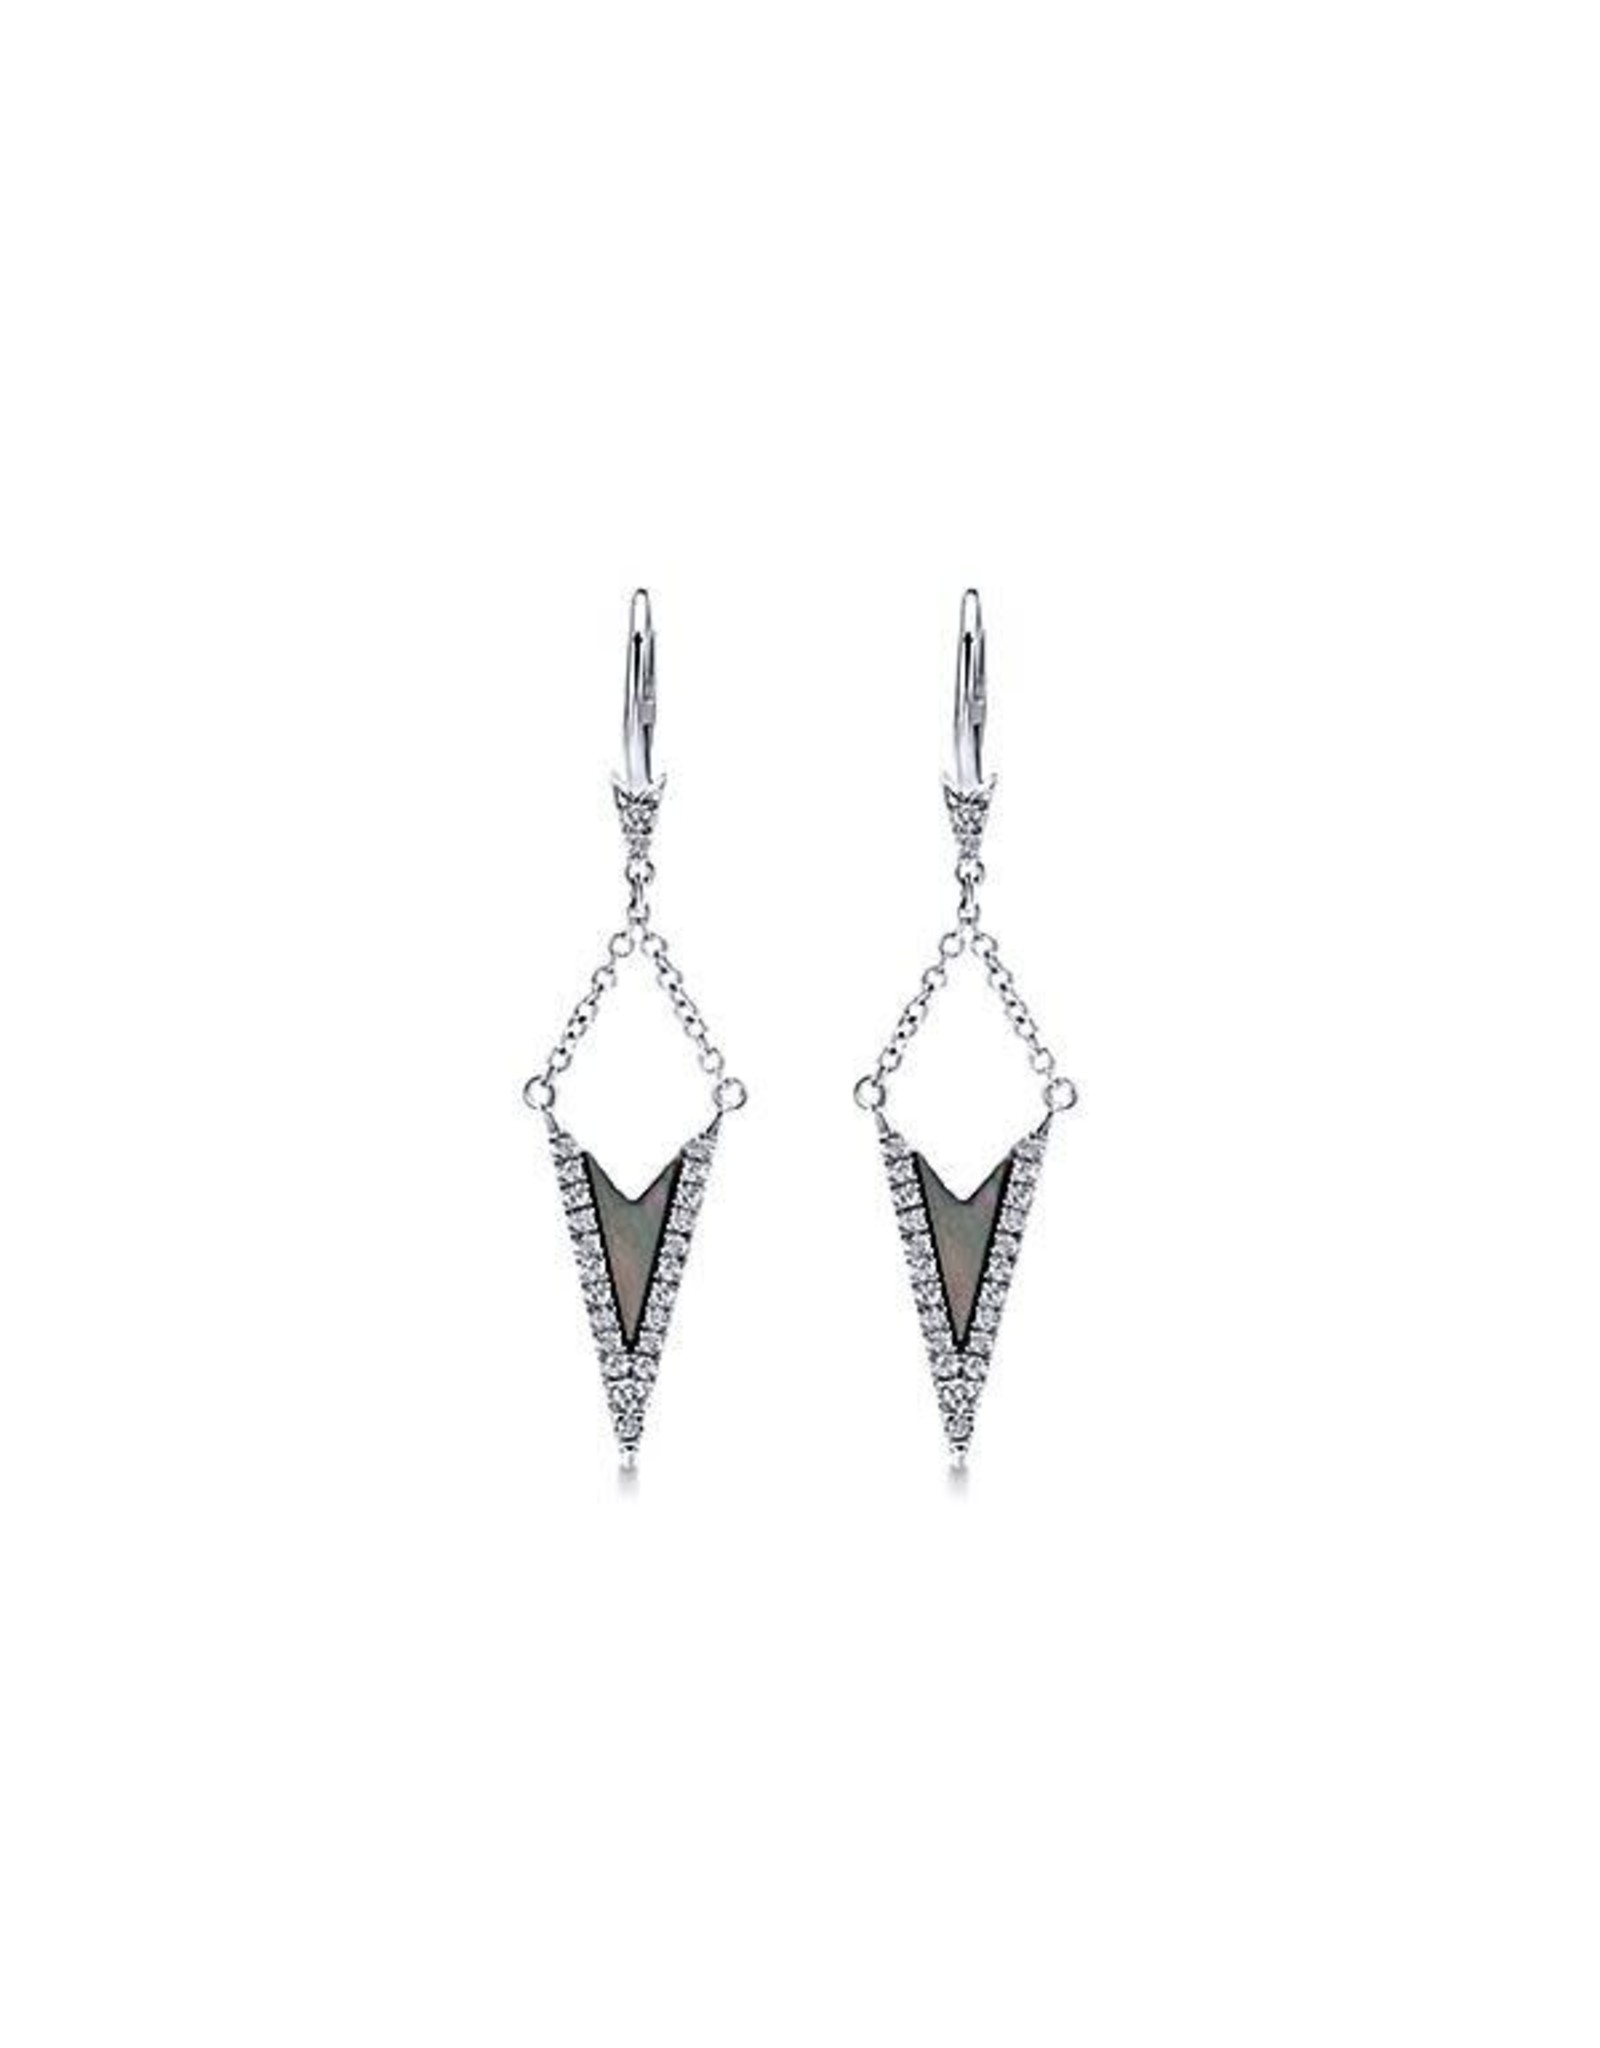 14K White Gold Black Mother of Pearl and Diamond Earrings D: 0.23ct